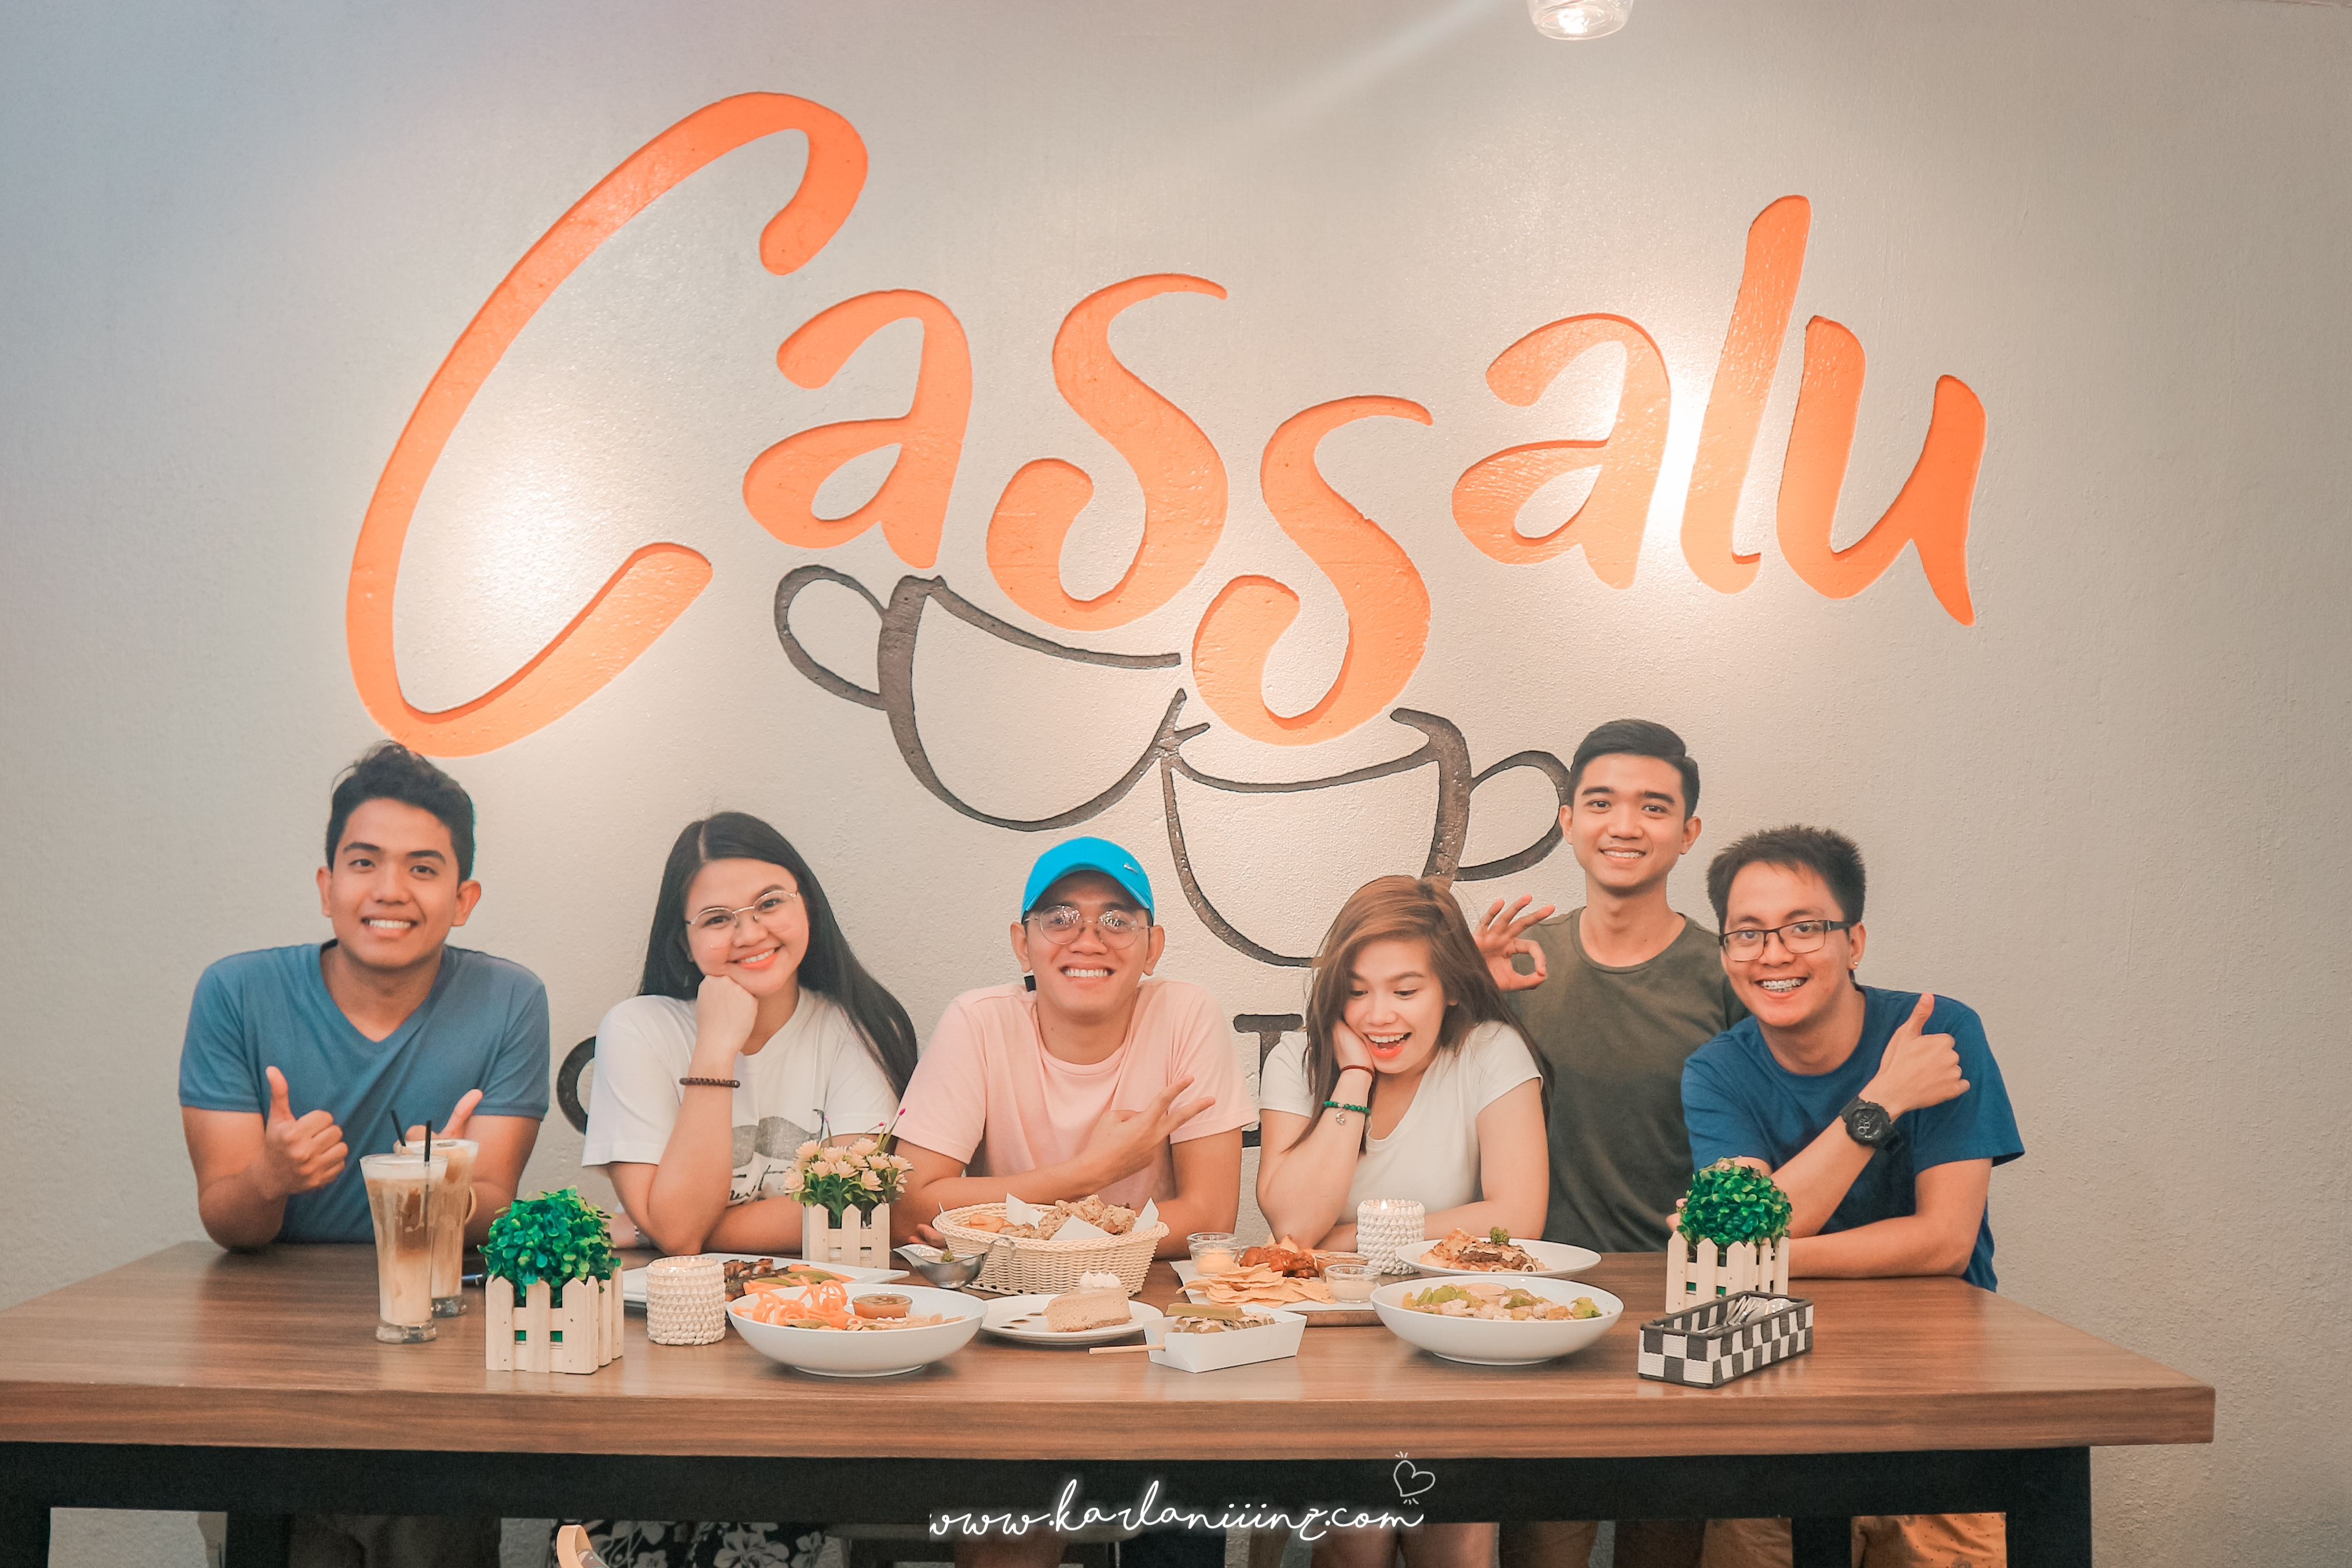 cassalu coffee & kitchen (amf)